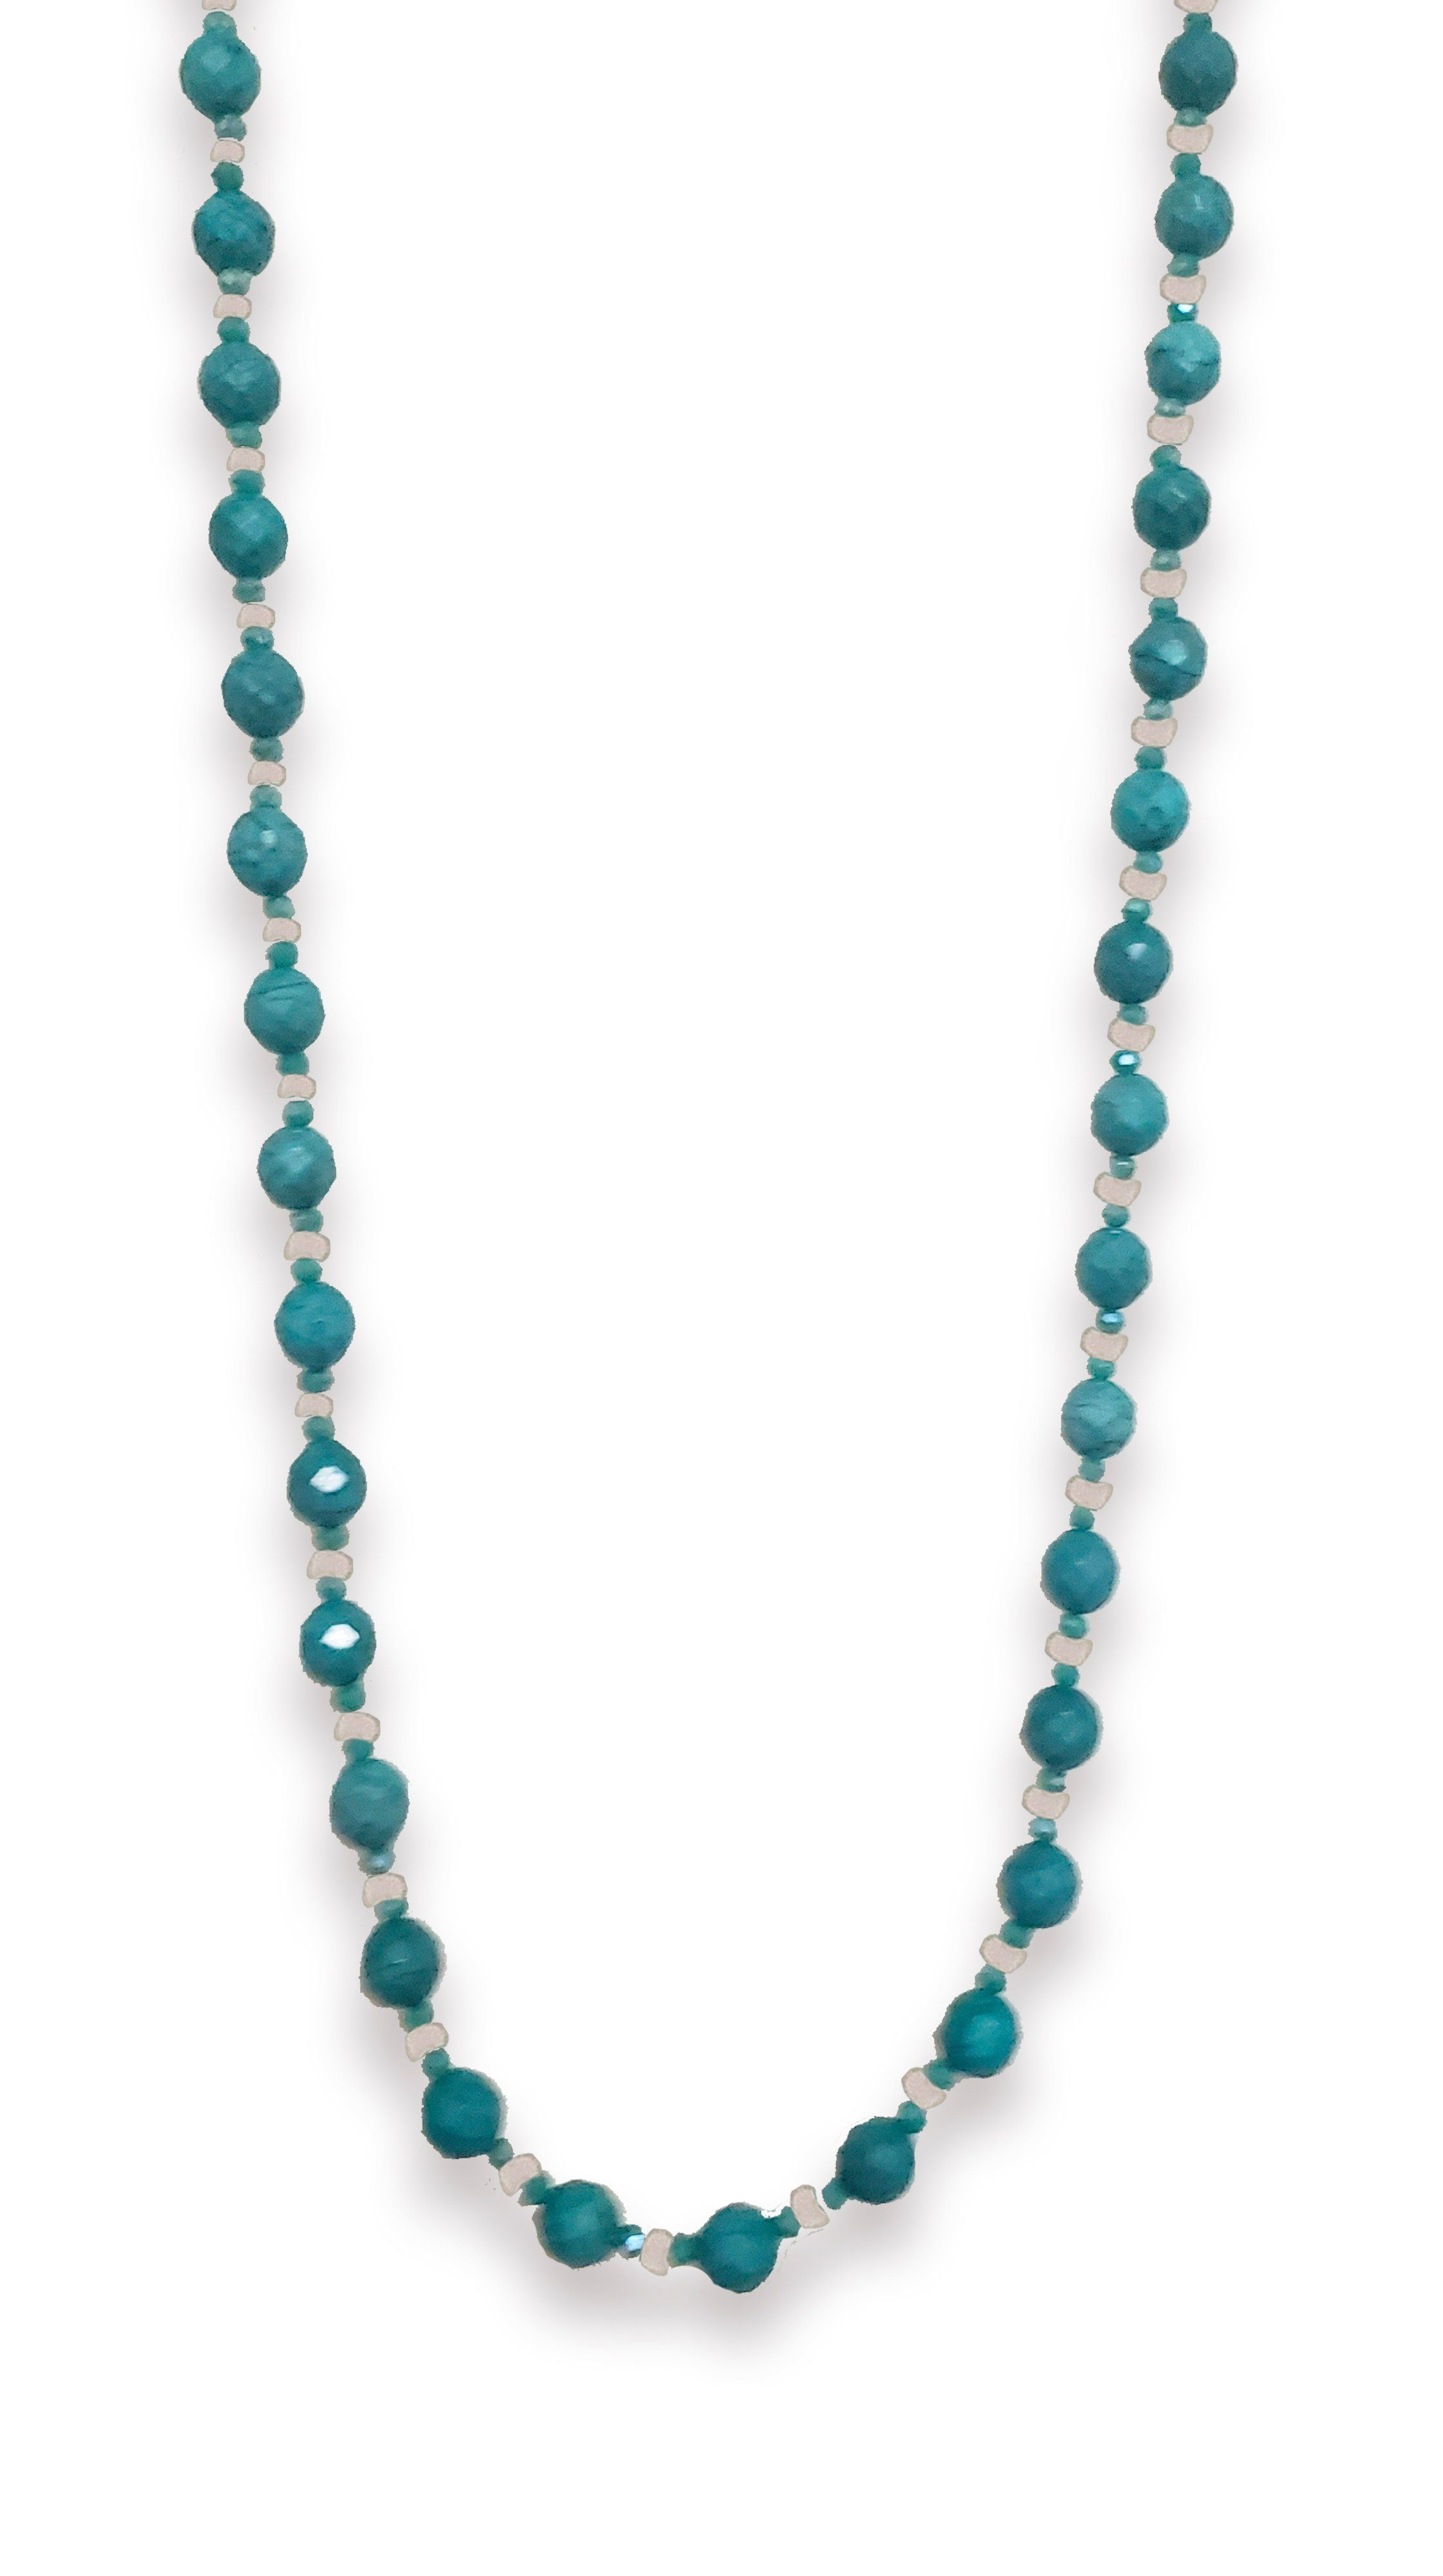 Turquoise Bead Necklace by Soul by Tapti Tapan | Nineteenth Amendment